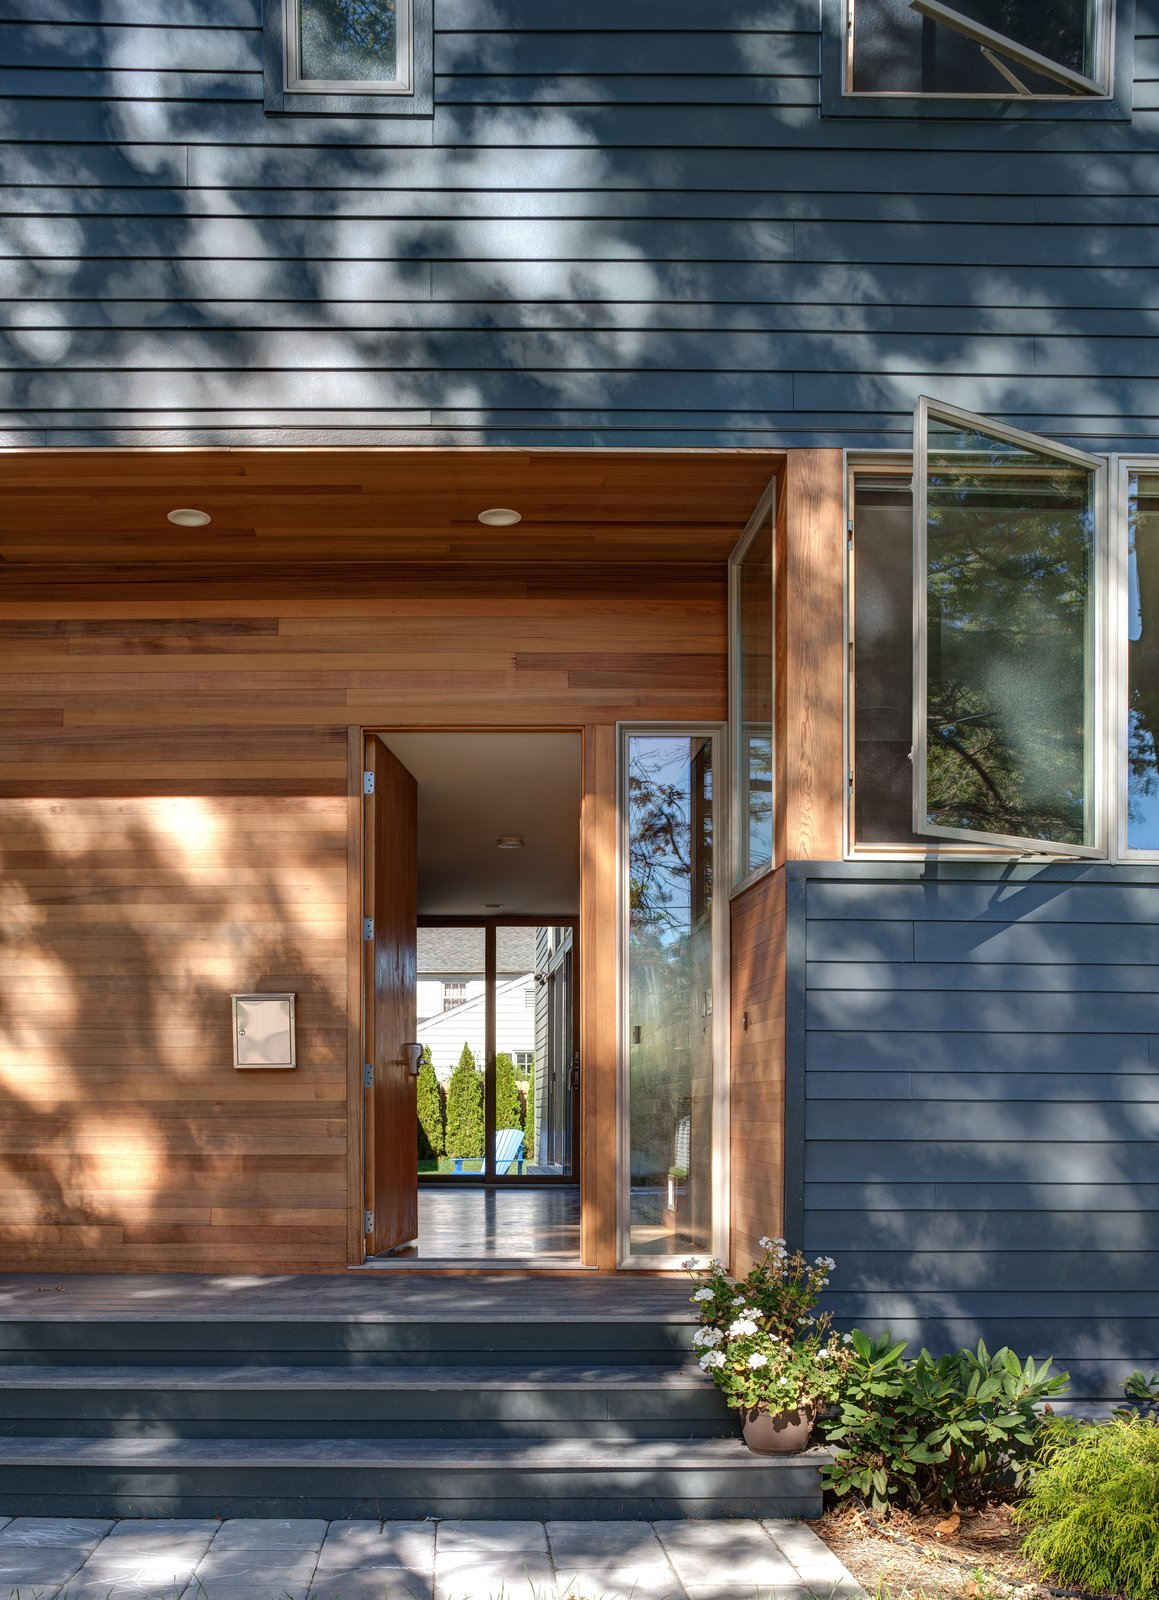 Oak Row House by Jeff Jordan Architects